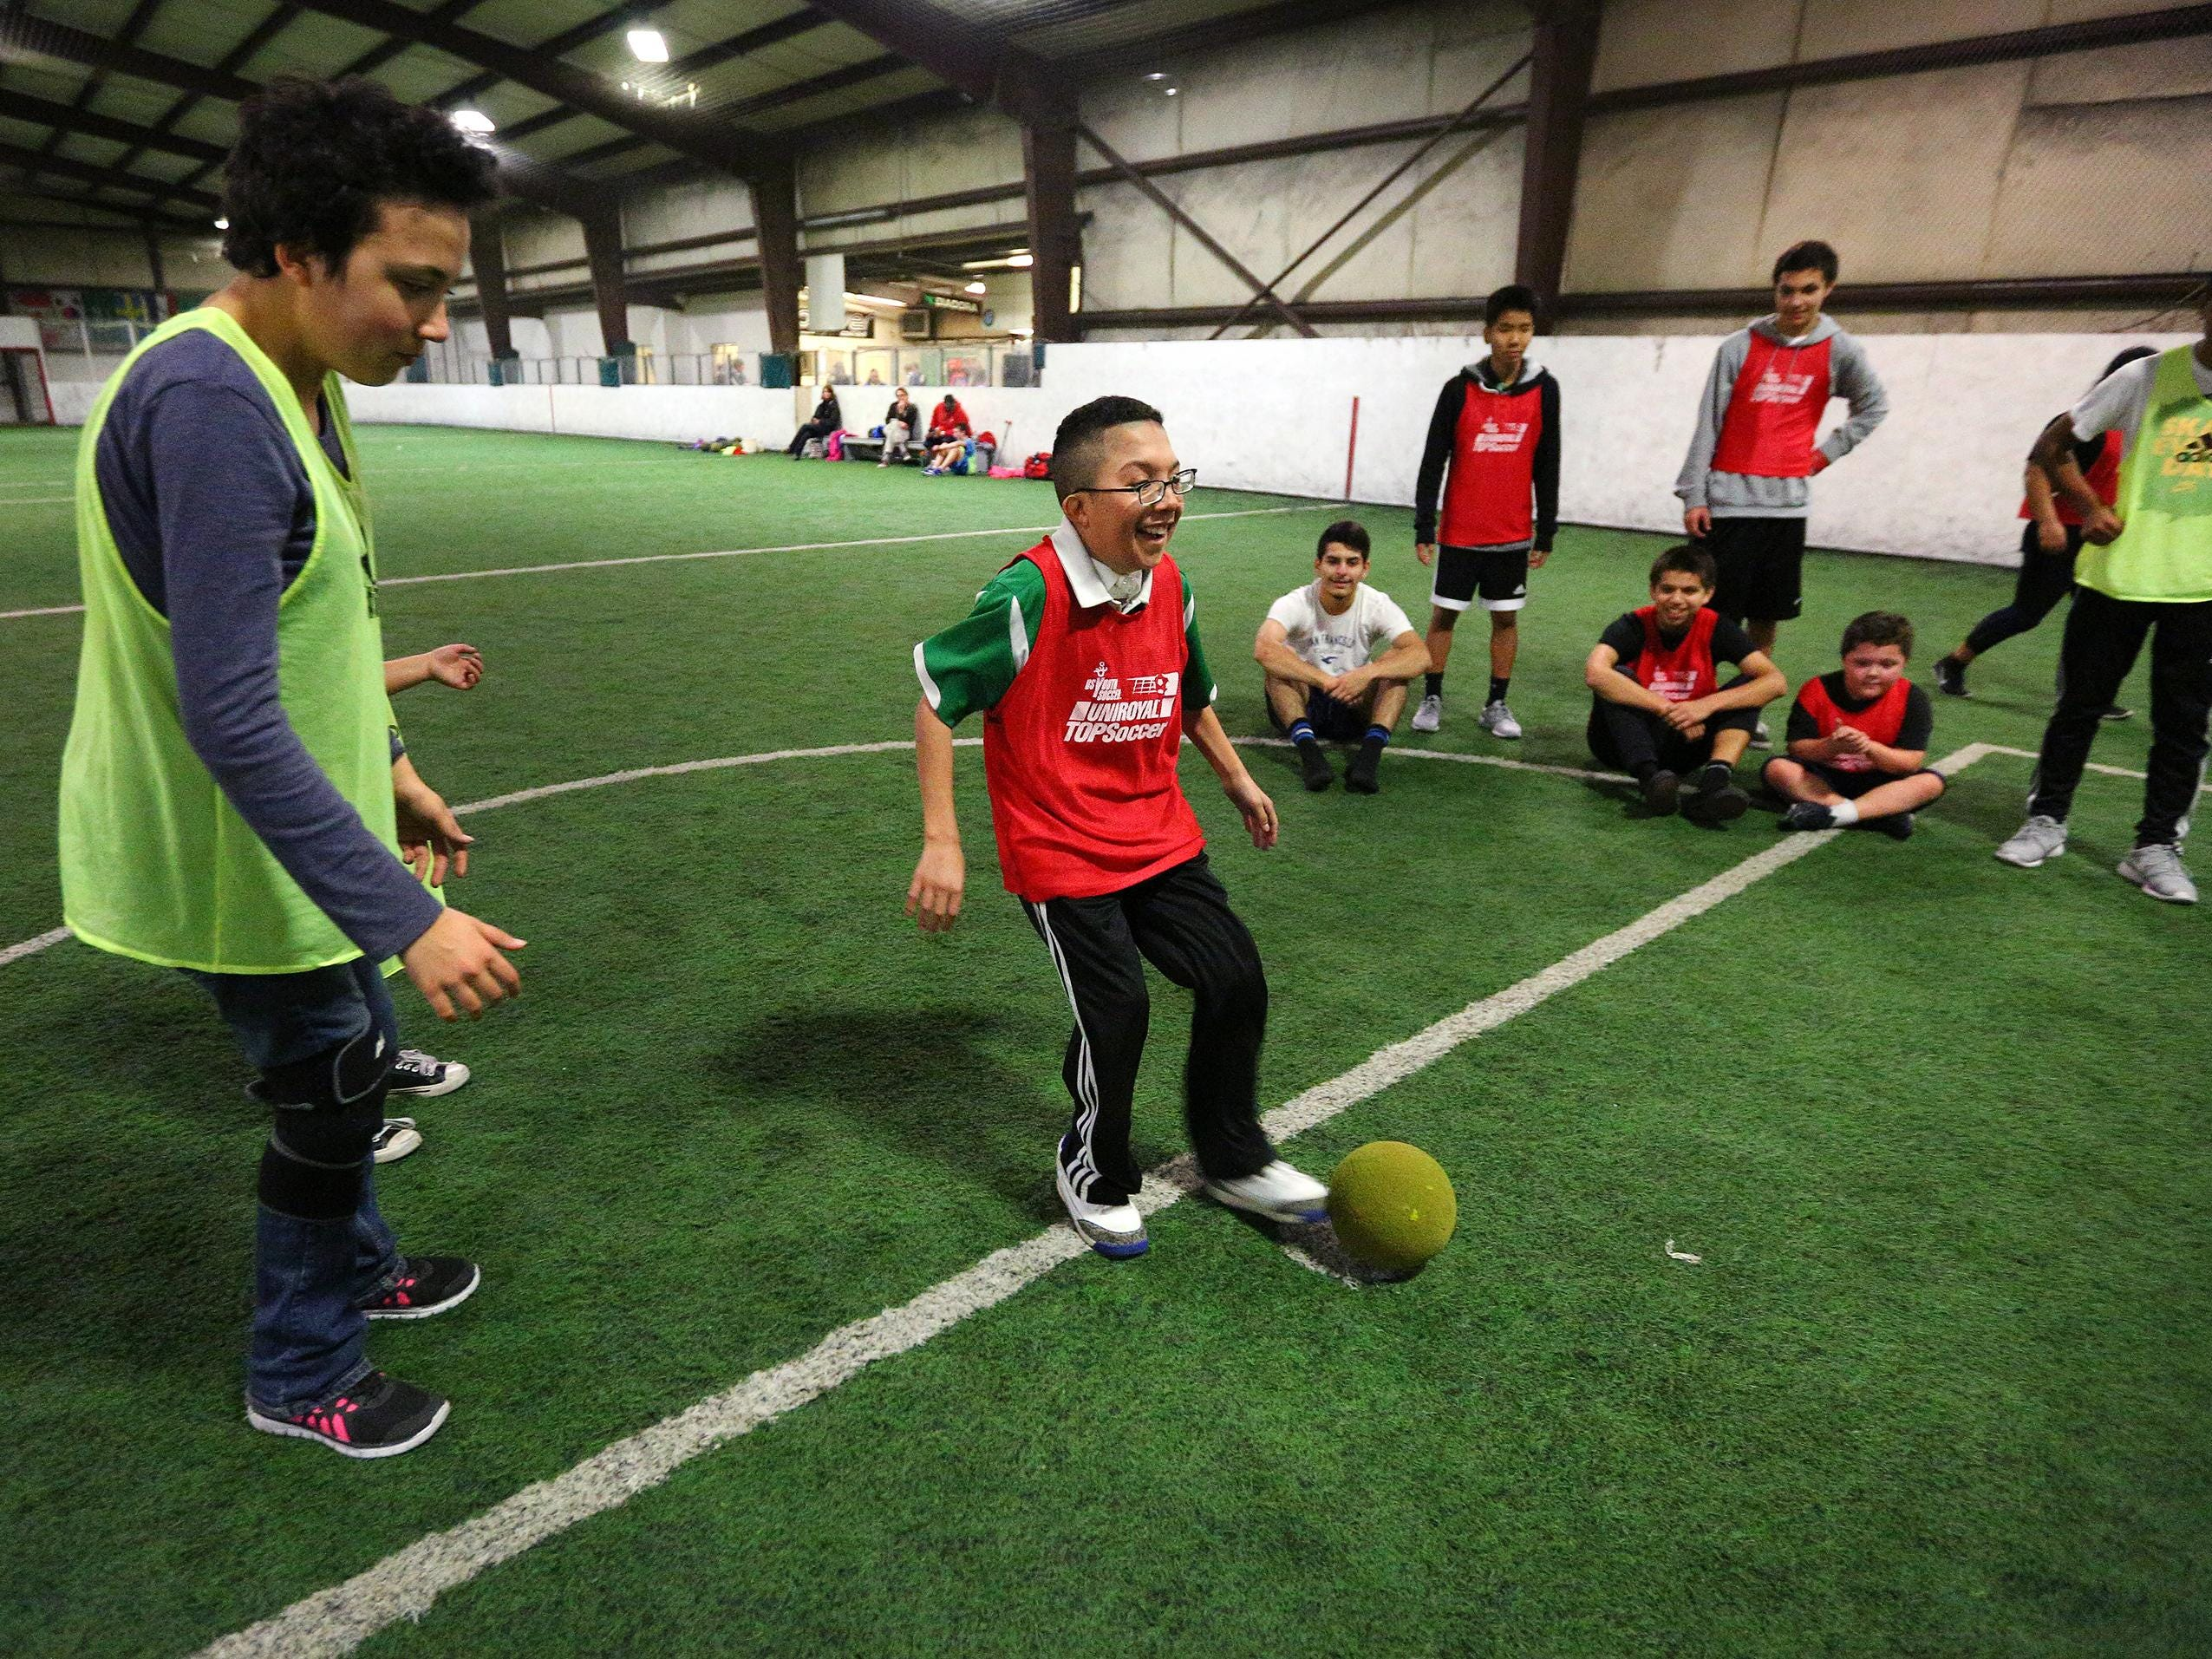 Corazon Barocio, 17, scores the game-winning goal during a youth soccer program with North Salem High School's boys soccer team, Wednesday, Nov. 18 at Salem Indoor Soccer Center in Salem.